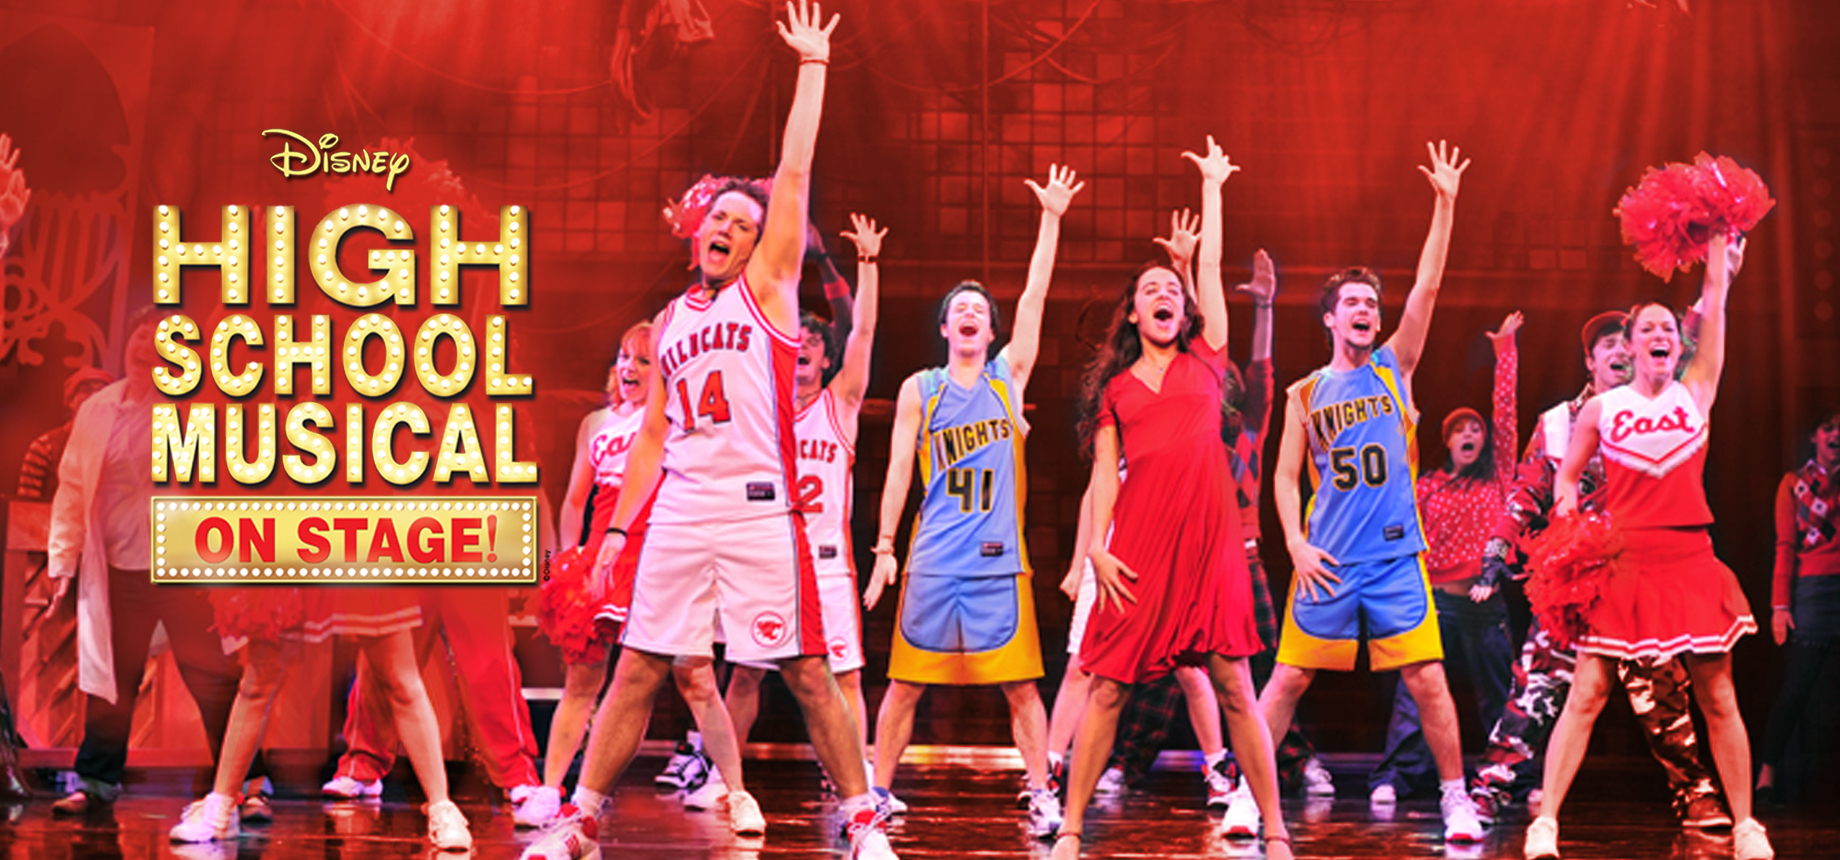 HQ High School Musical Wallpapers | File 1072.75Kb